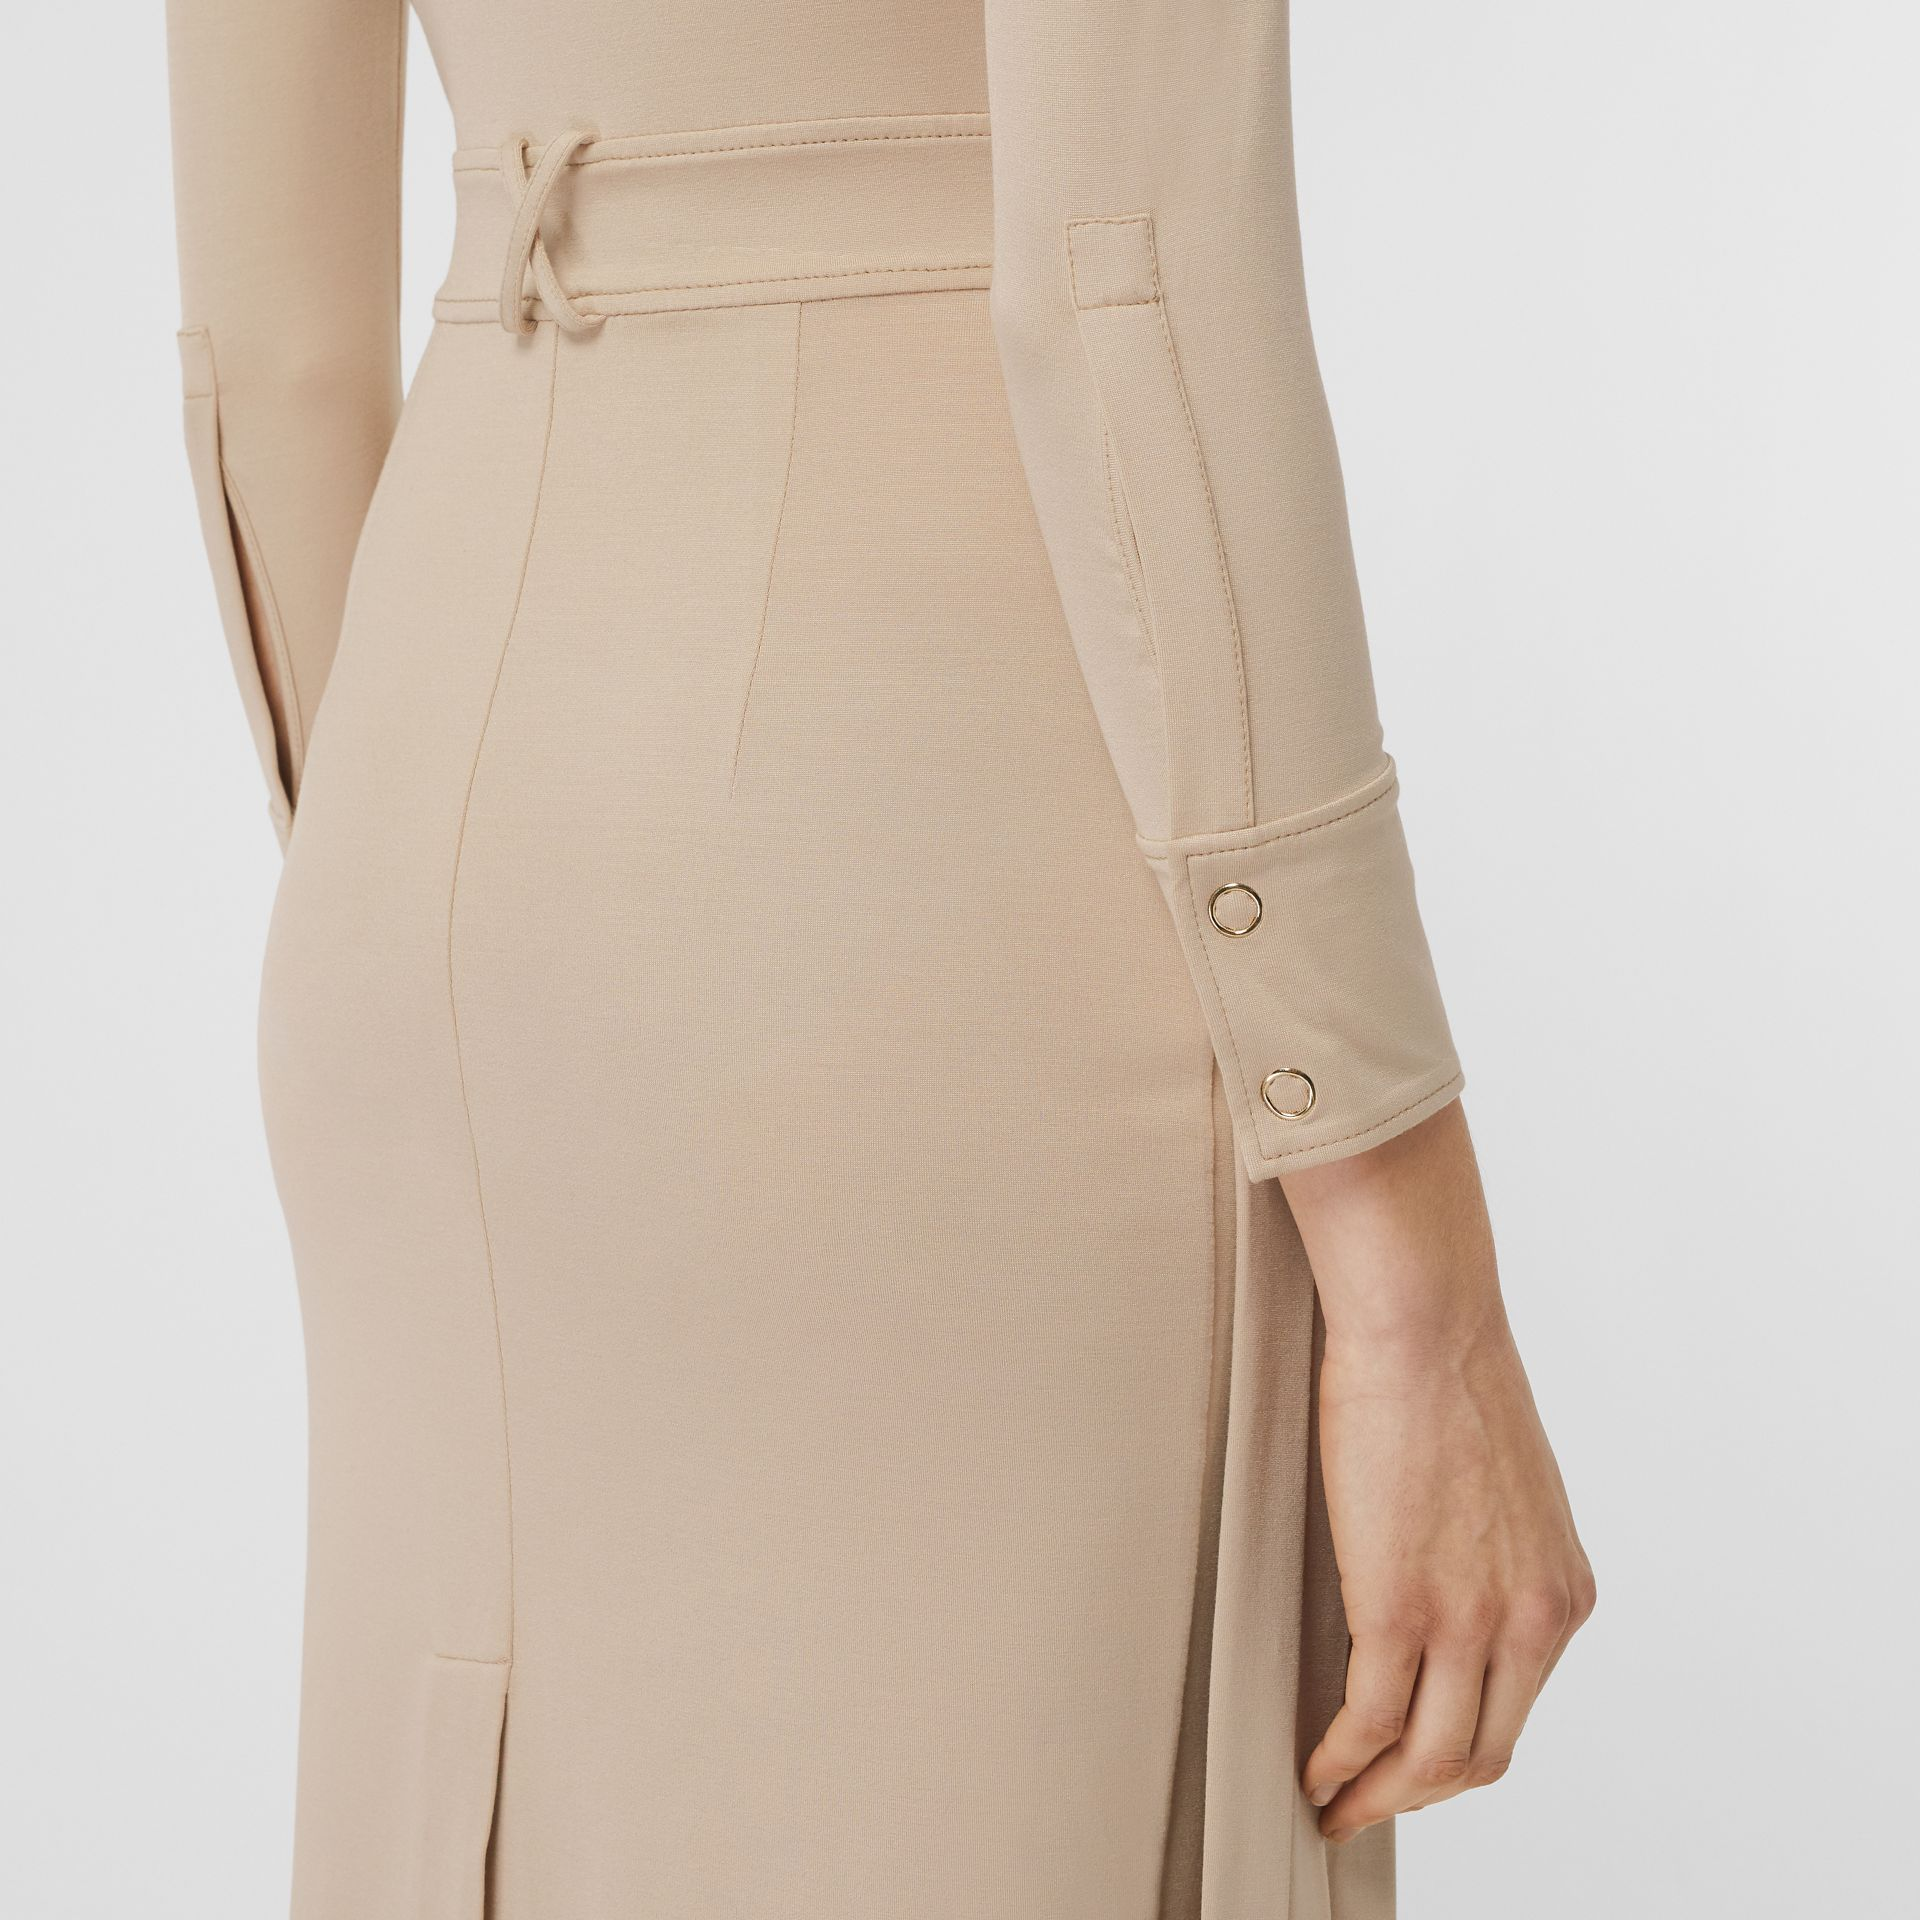 Long-sleeve Pleated Dress in Teddy Beige - Women | Burberry United Kingdom - gallery image 1